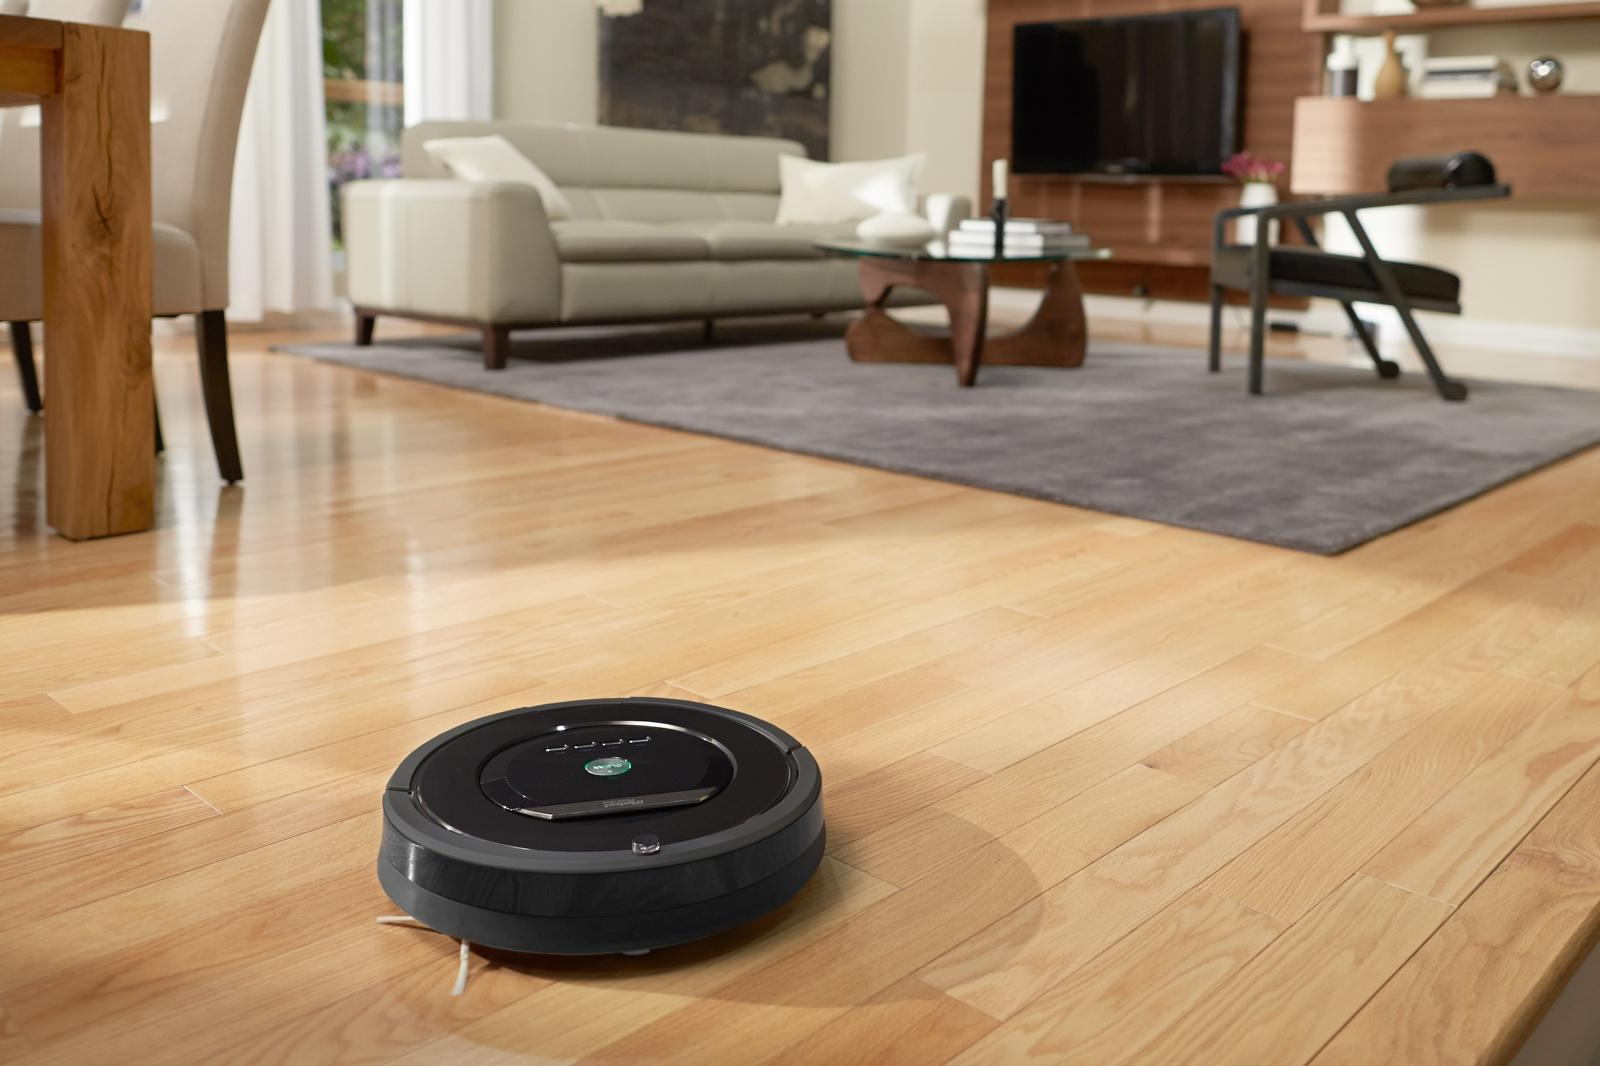 irobot roomba 650 manual pdf